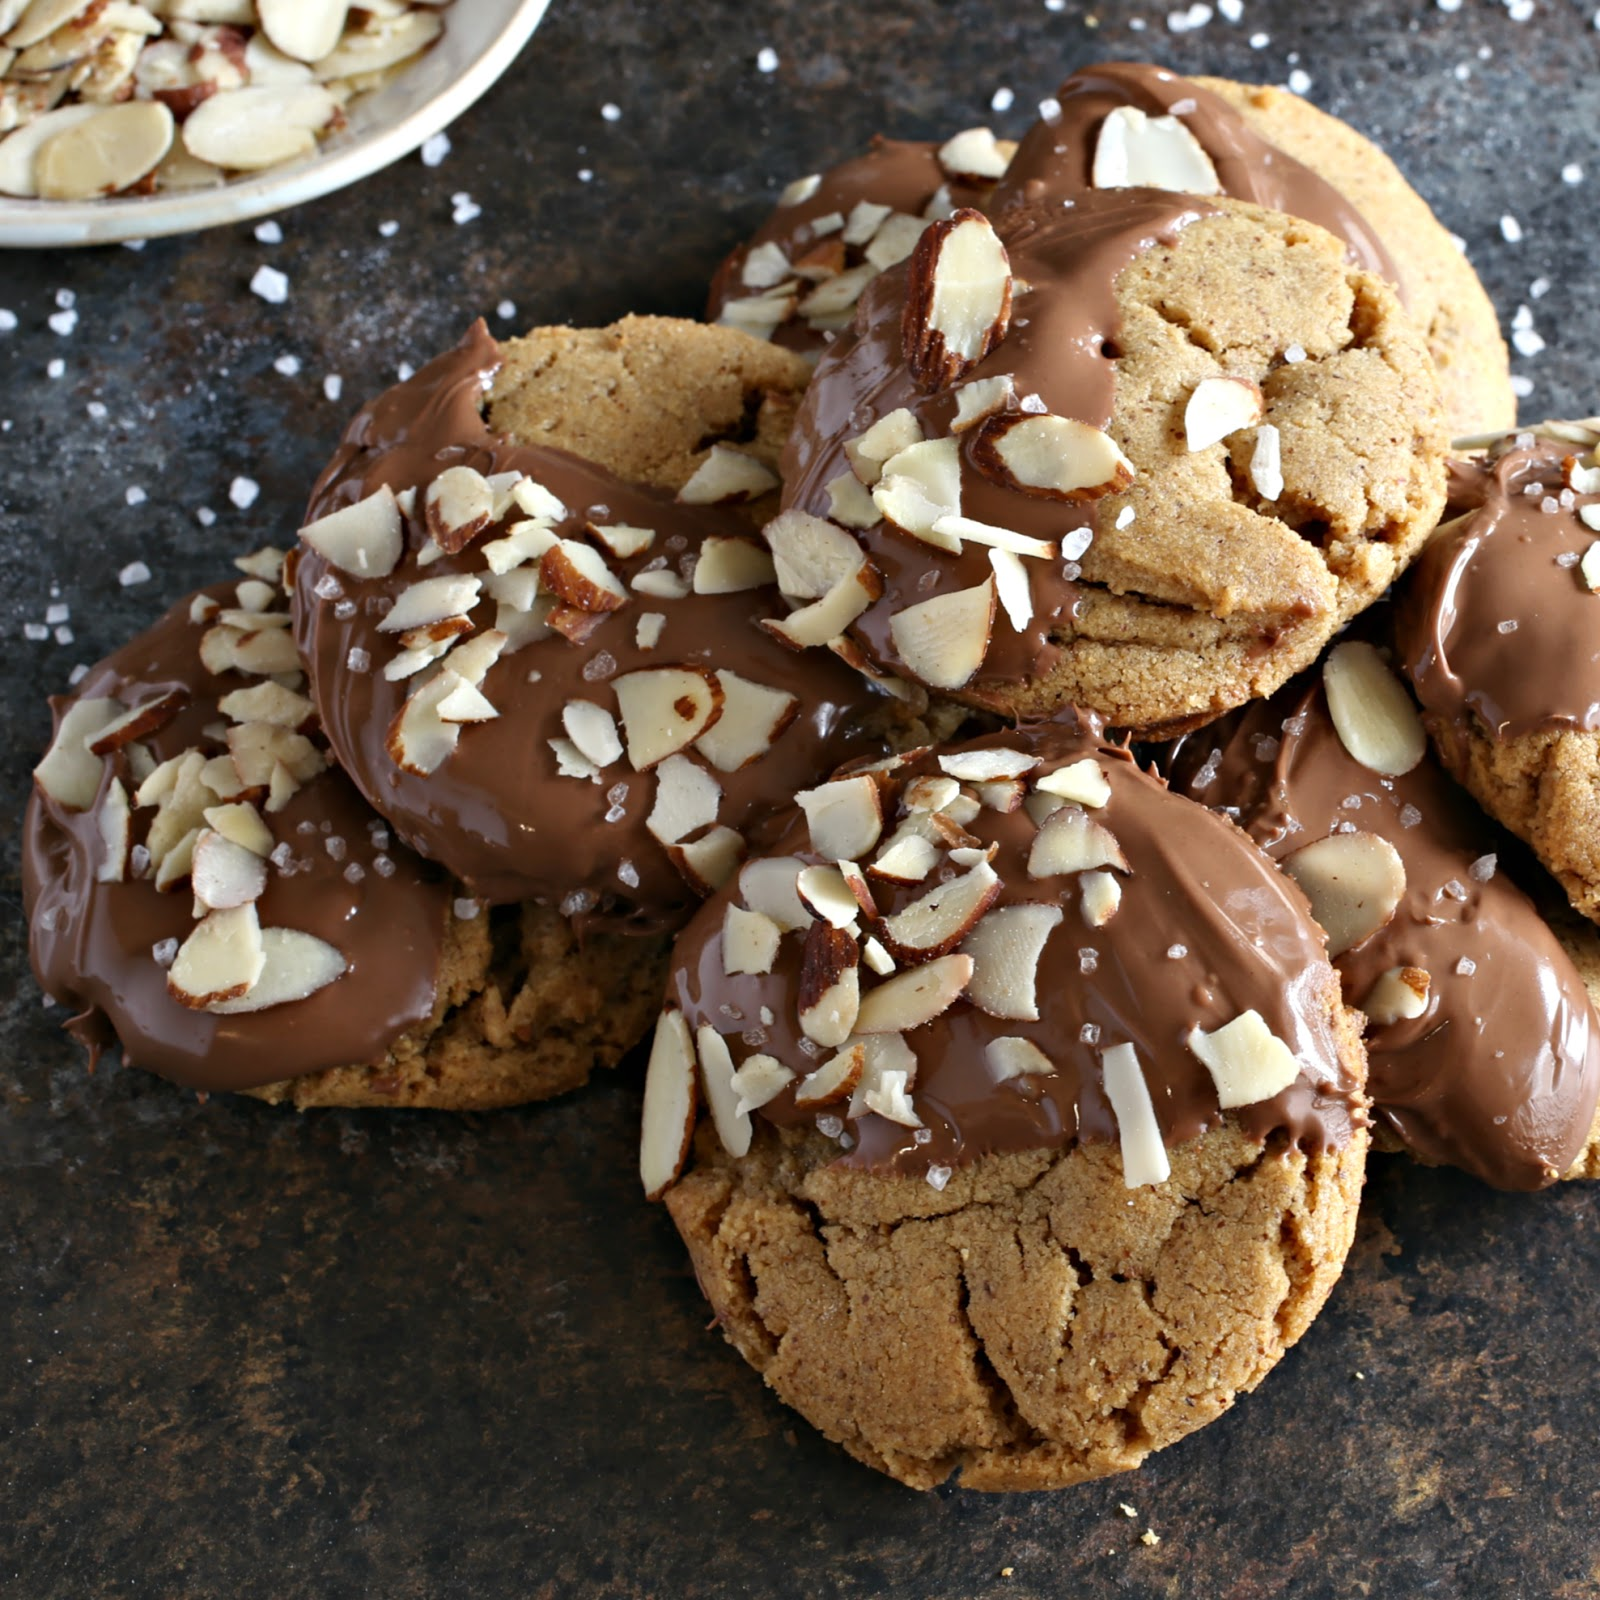 Almond butter cookies coated with chocolate and sprinkled with slivered almonds and sea salt.